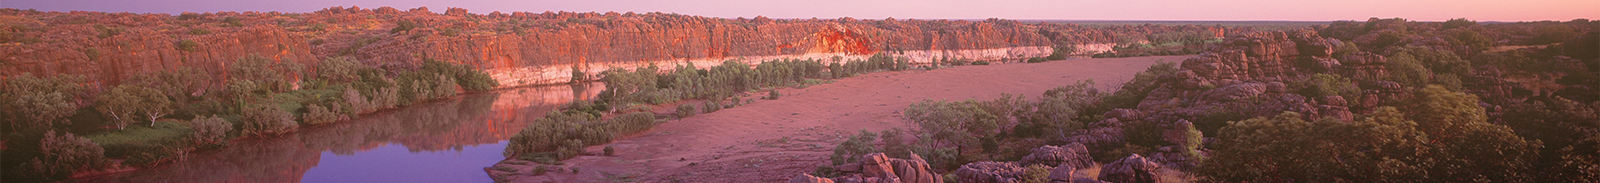 Outback Gorge Banner - Right Hand Remote Solutions